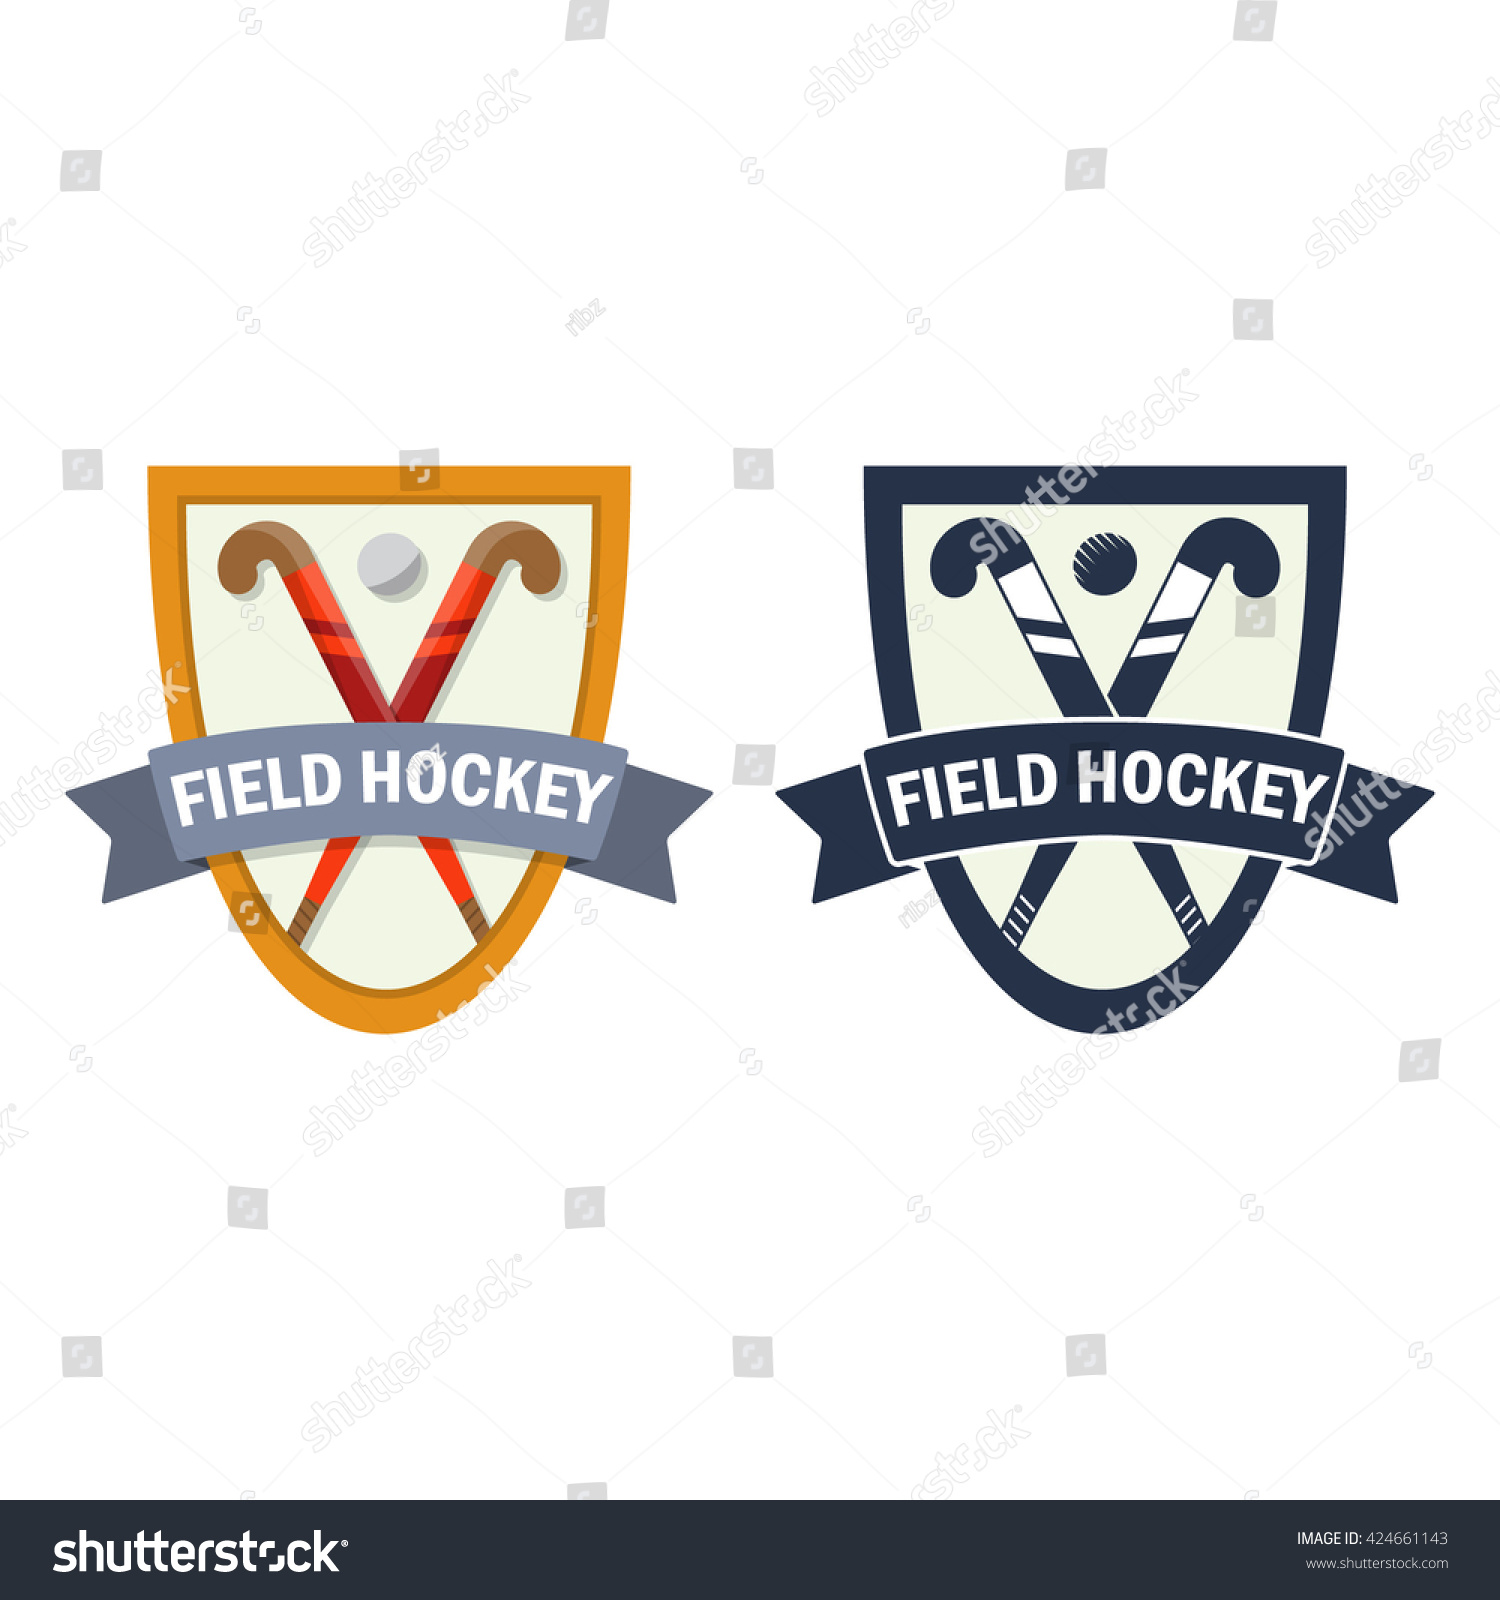 Vector Field Hockey Badge Color Monochrome Stock Vector 424661143